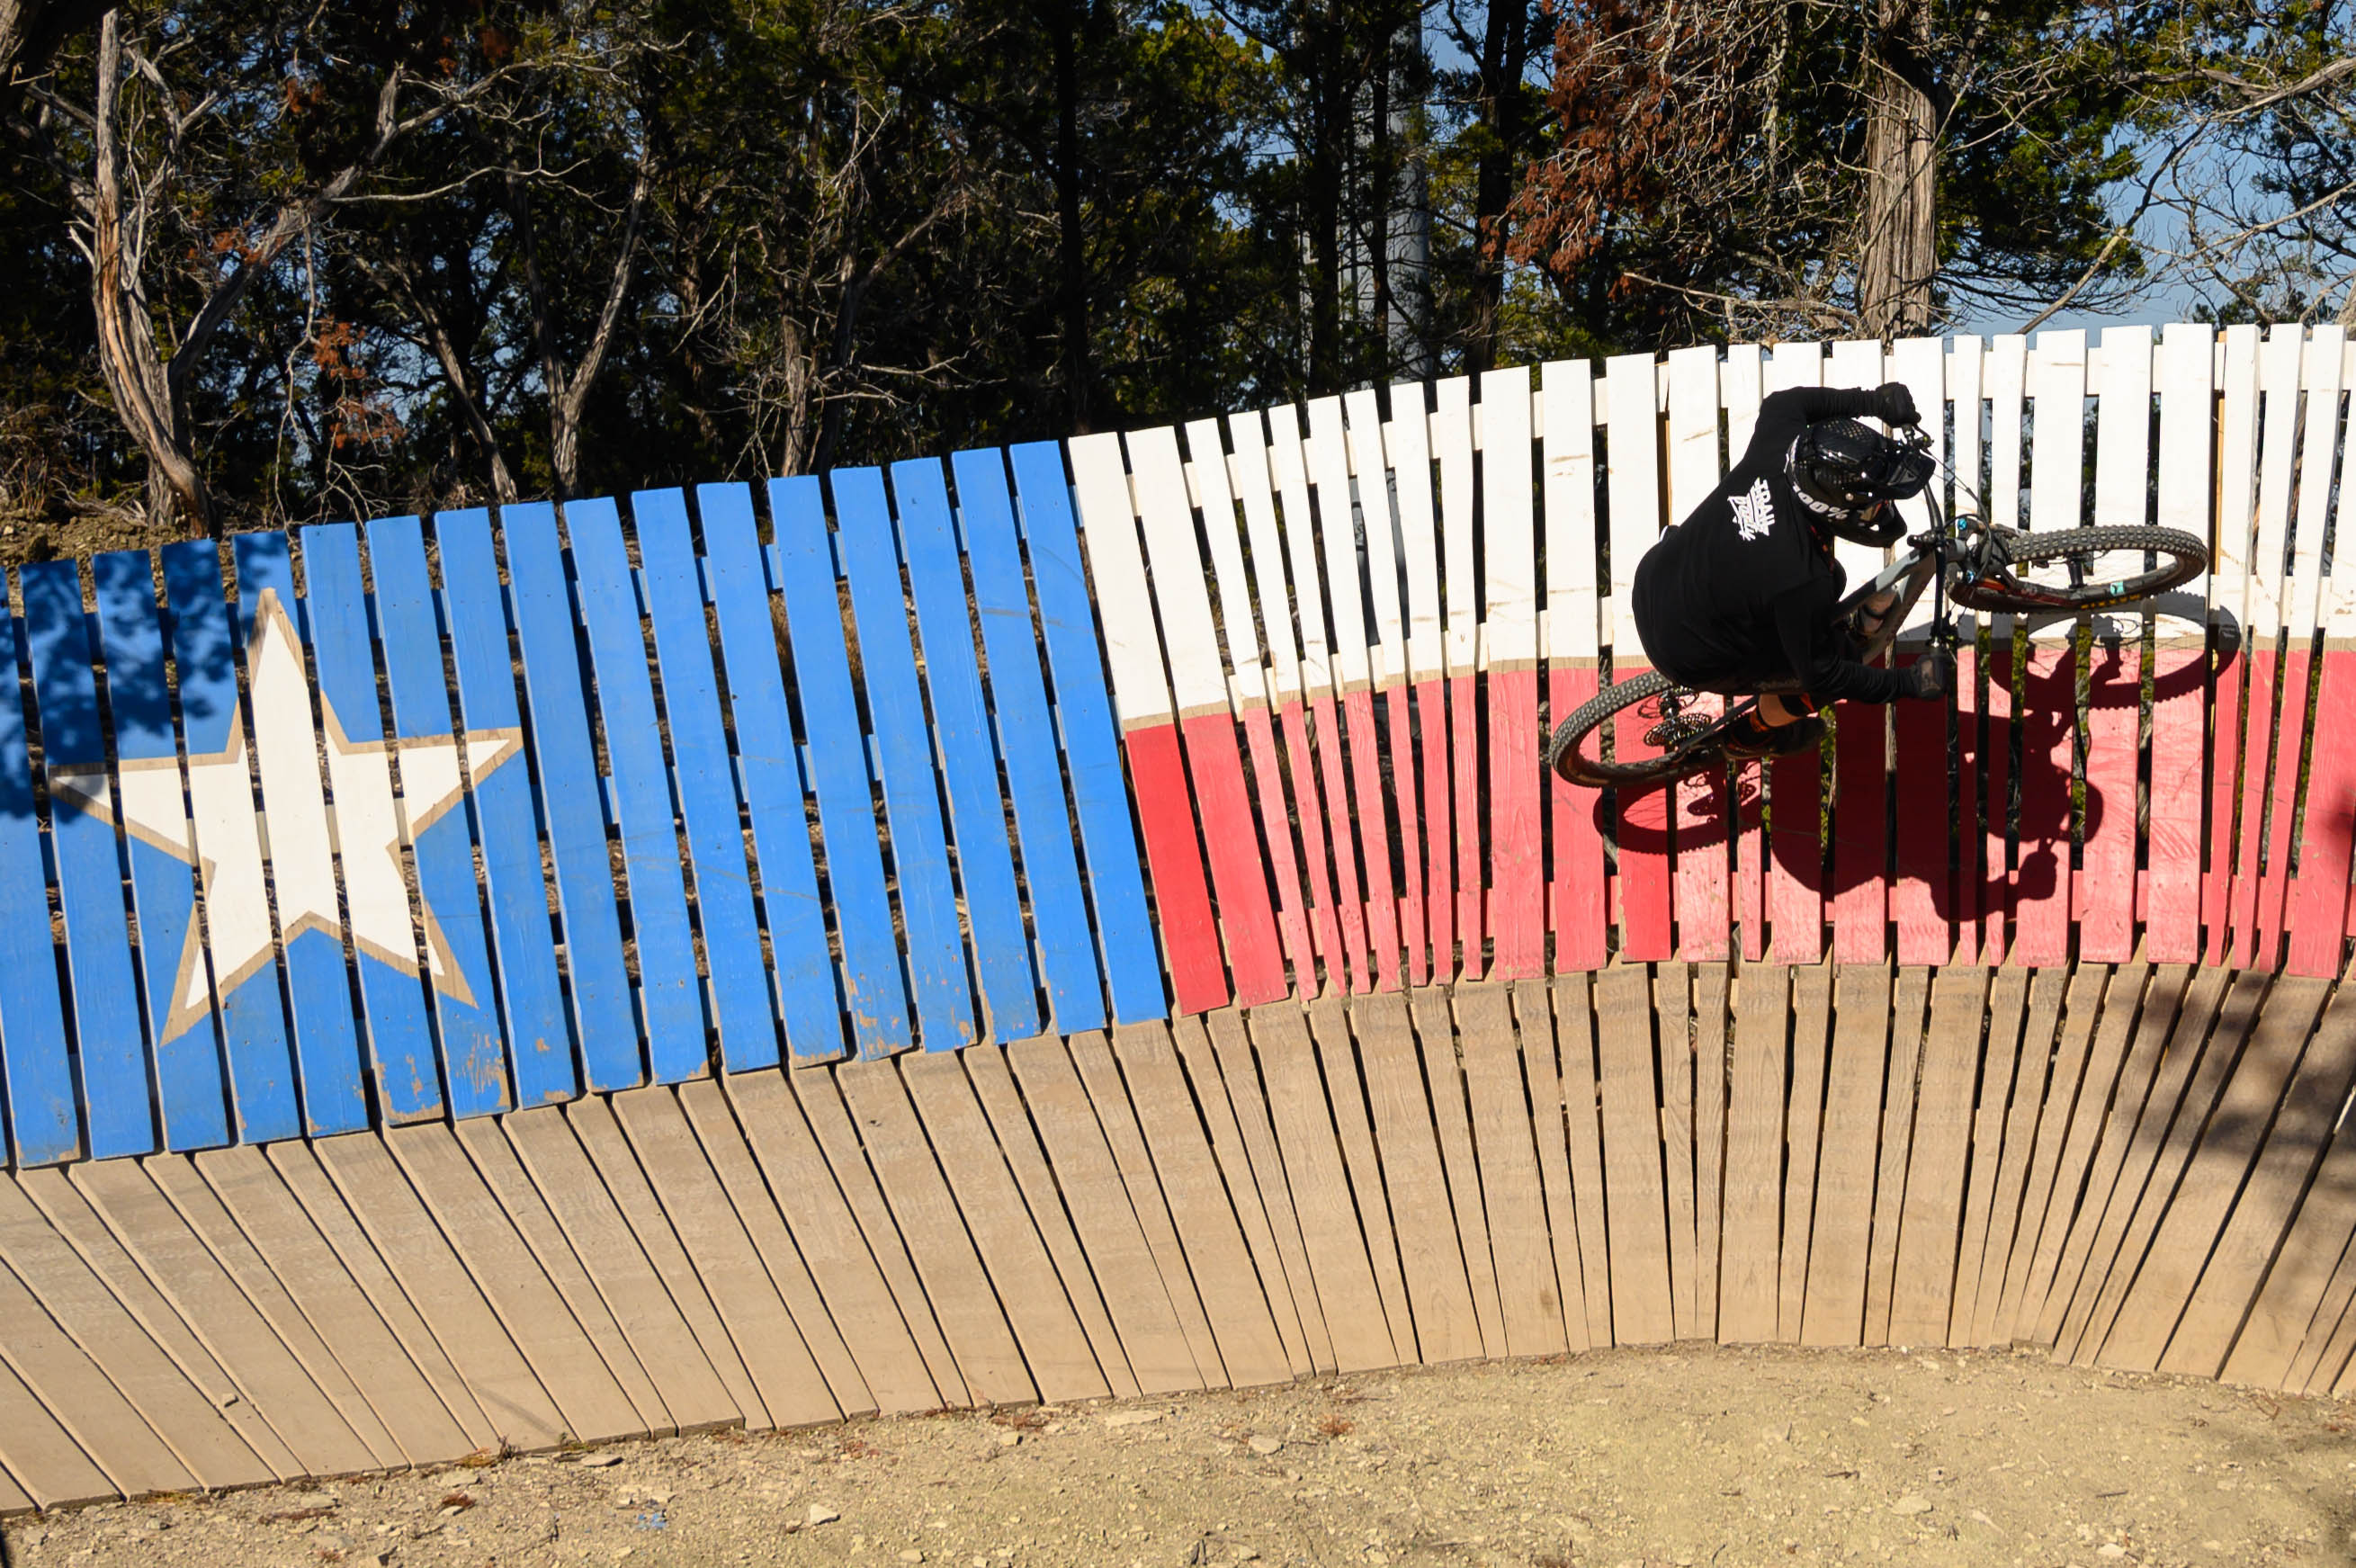 Local racer and Team Trail Party's graphic designer, Steven Mullins, hits the Texas flag wall ride on Viper's Den.